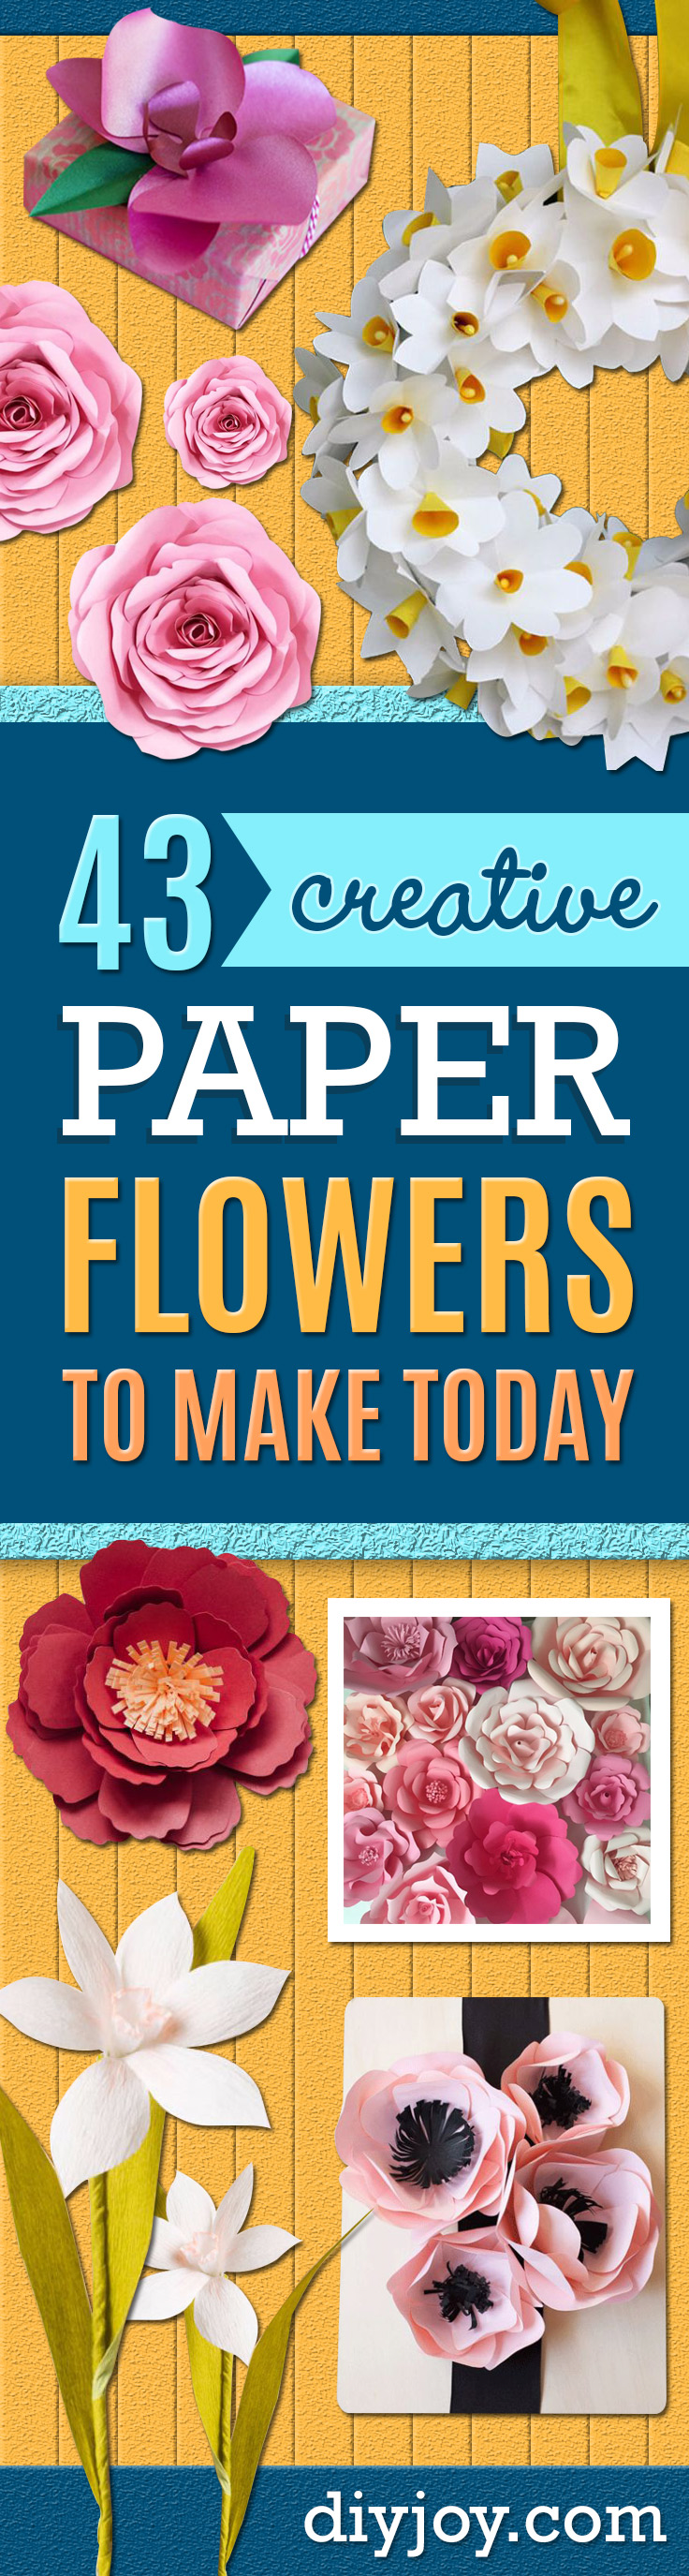 DIY Paper Flowers - How To Make A Paper Flower - Large Wedding Backdrop for Wall Decor - Easy Tissue Paper Flower Tutorial for Kids - Giant Projects for Photo Backdrops - Daisy, Roses, Bouquets, Centerpieces - Cricut Template and Step by Step Tutorial http://diyjoy.com/diy-paper-flowers